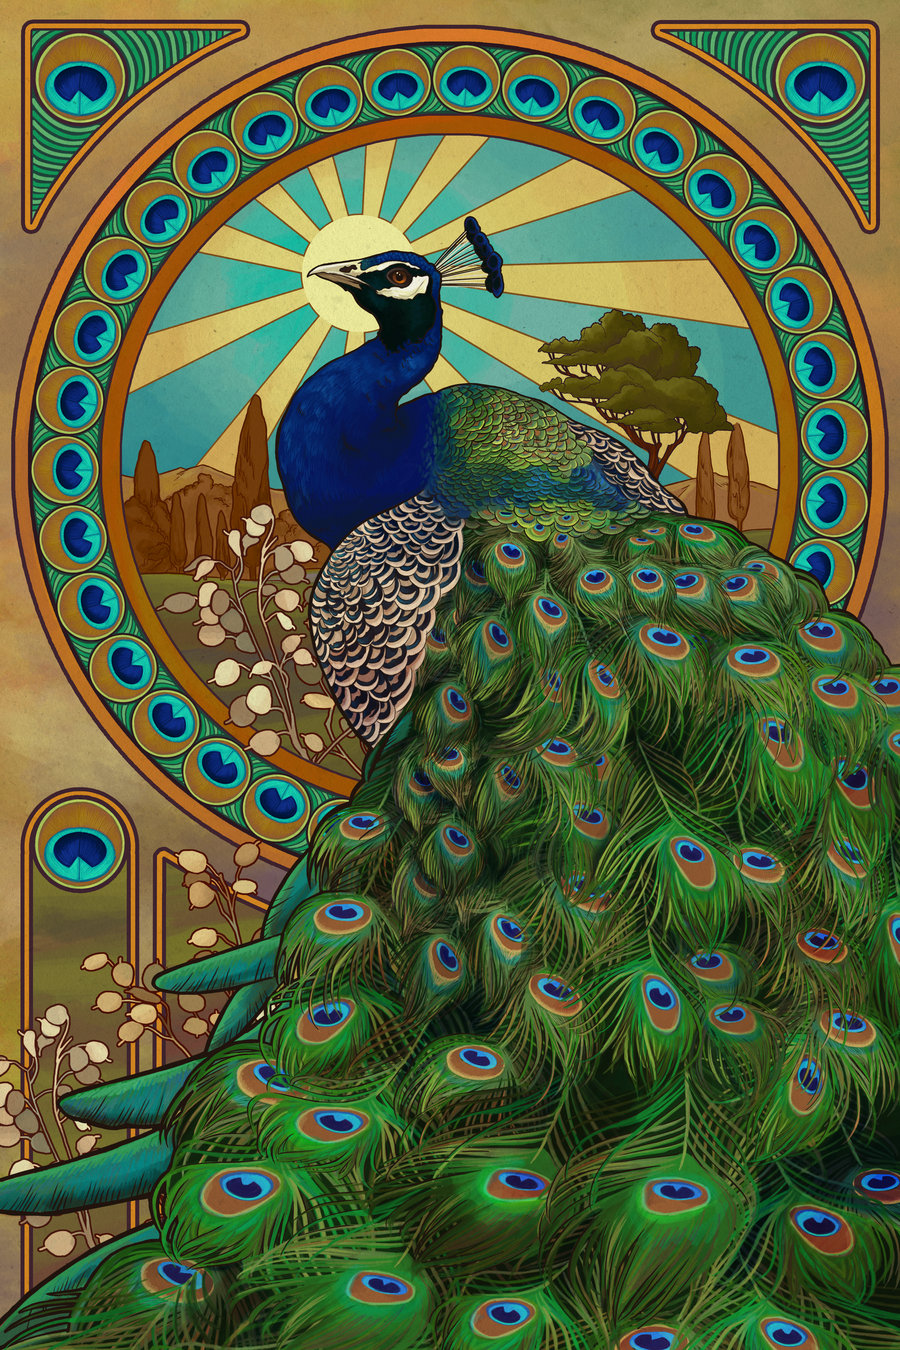 Fall Feather Wallpaper Free Peacock Images Art Download Free Clip Art Free Clip